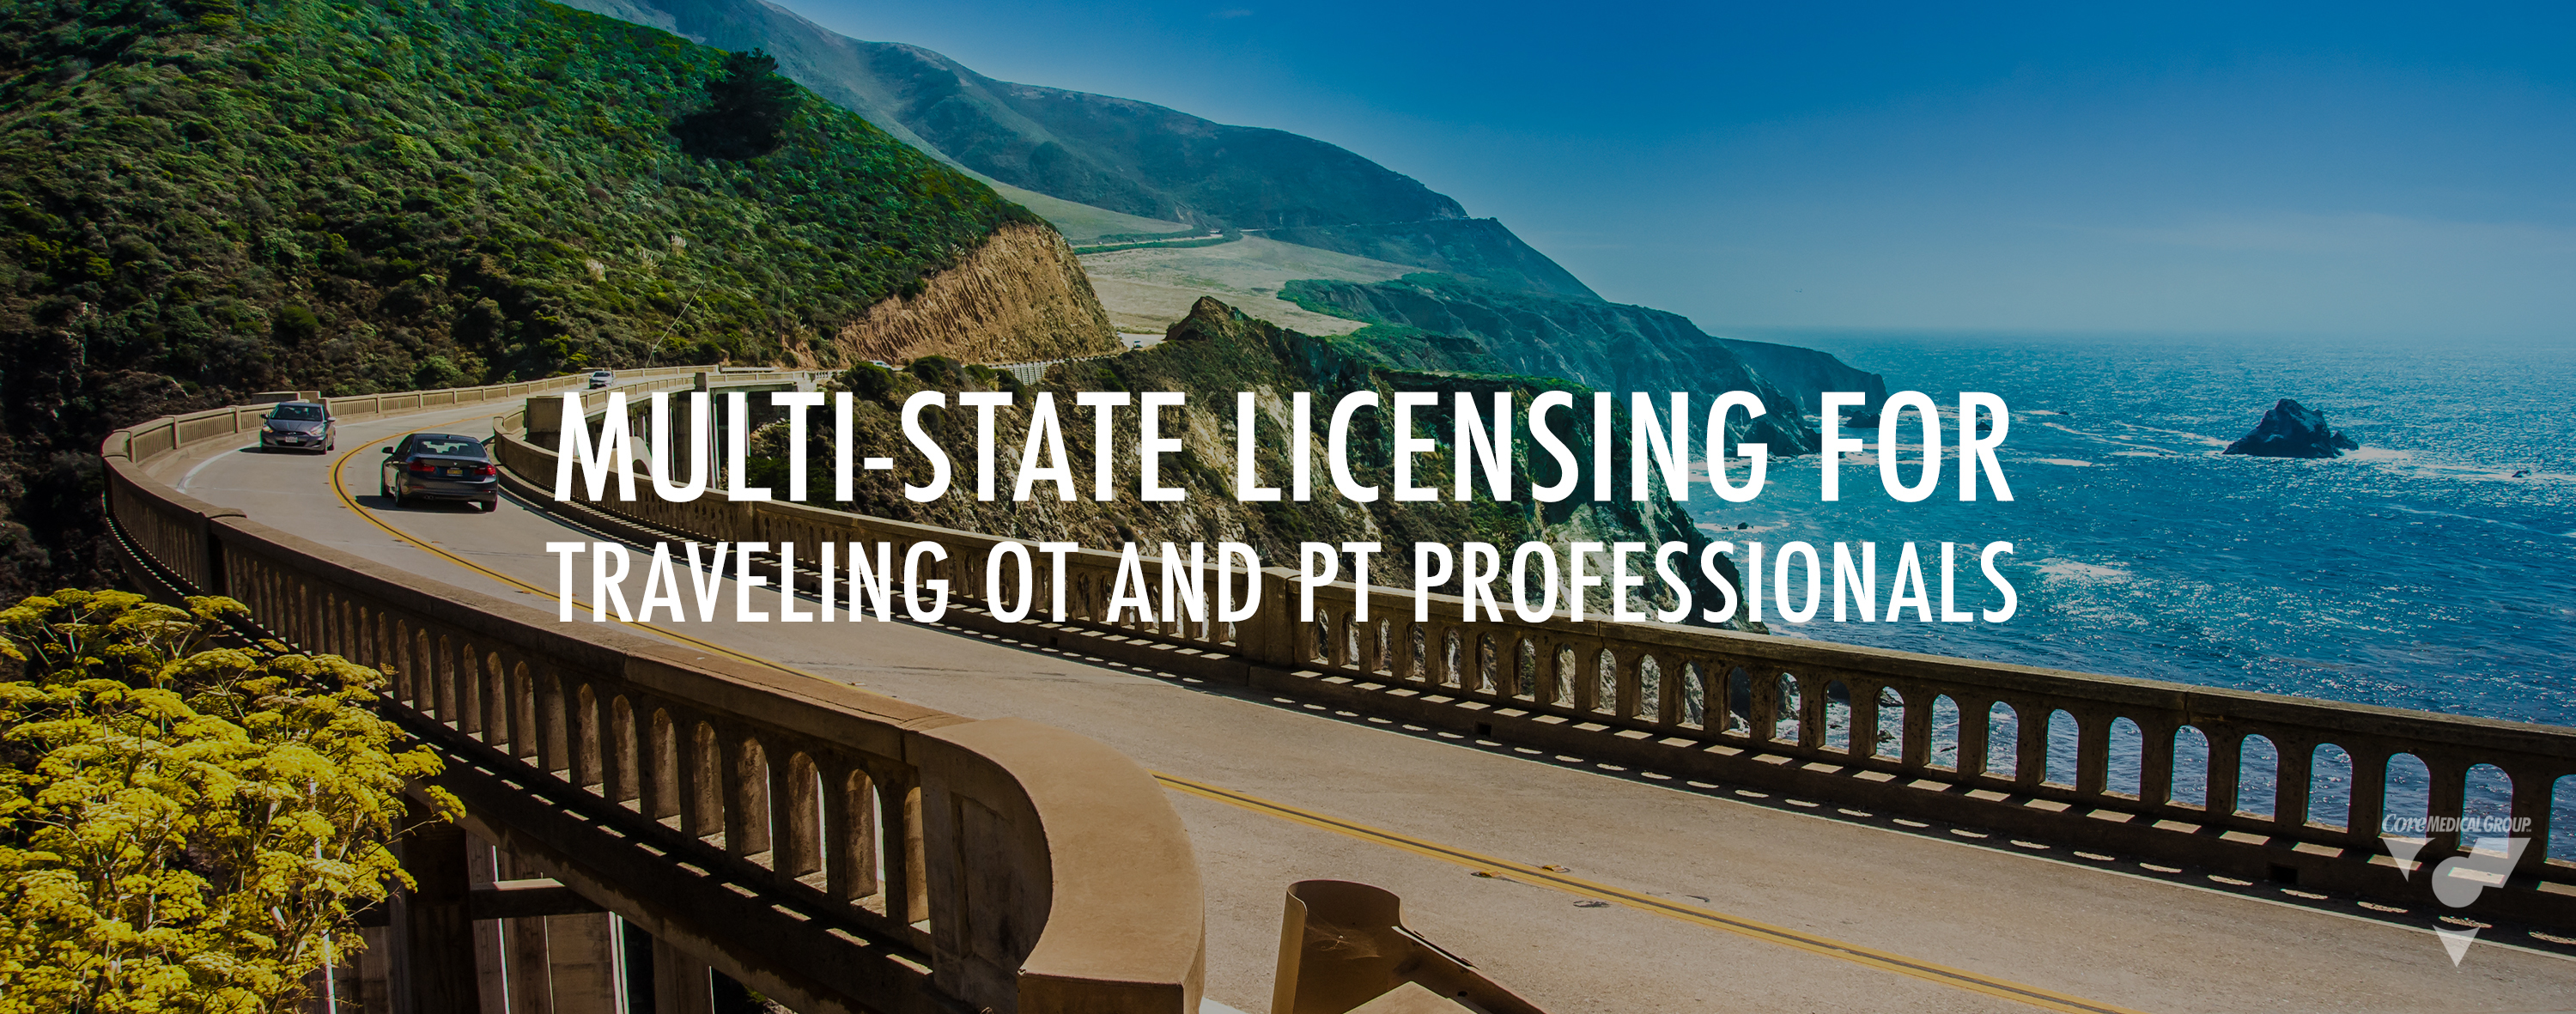 Core Medical Group CMG Multi-State Licensing for Traveling OT and PT Professionals